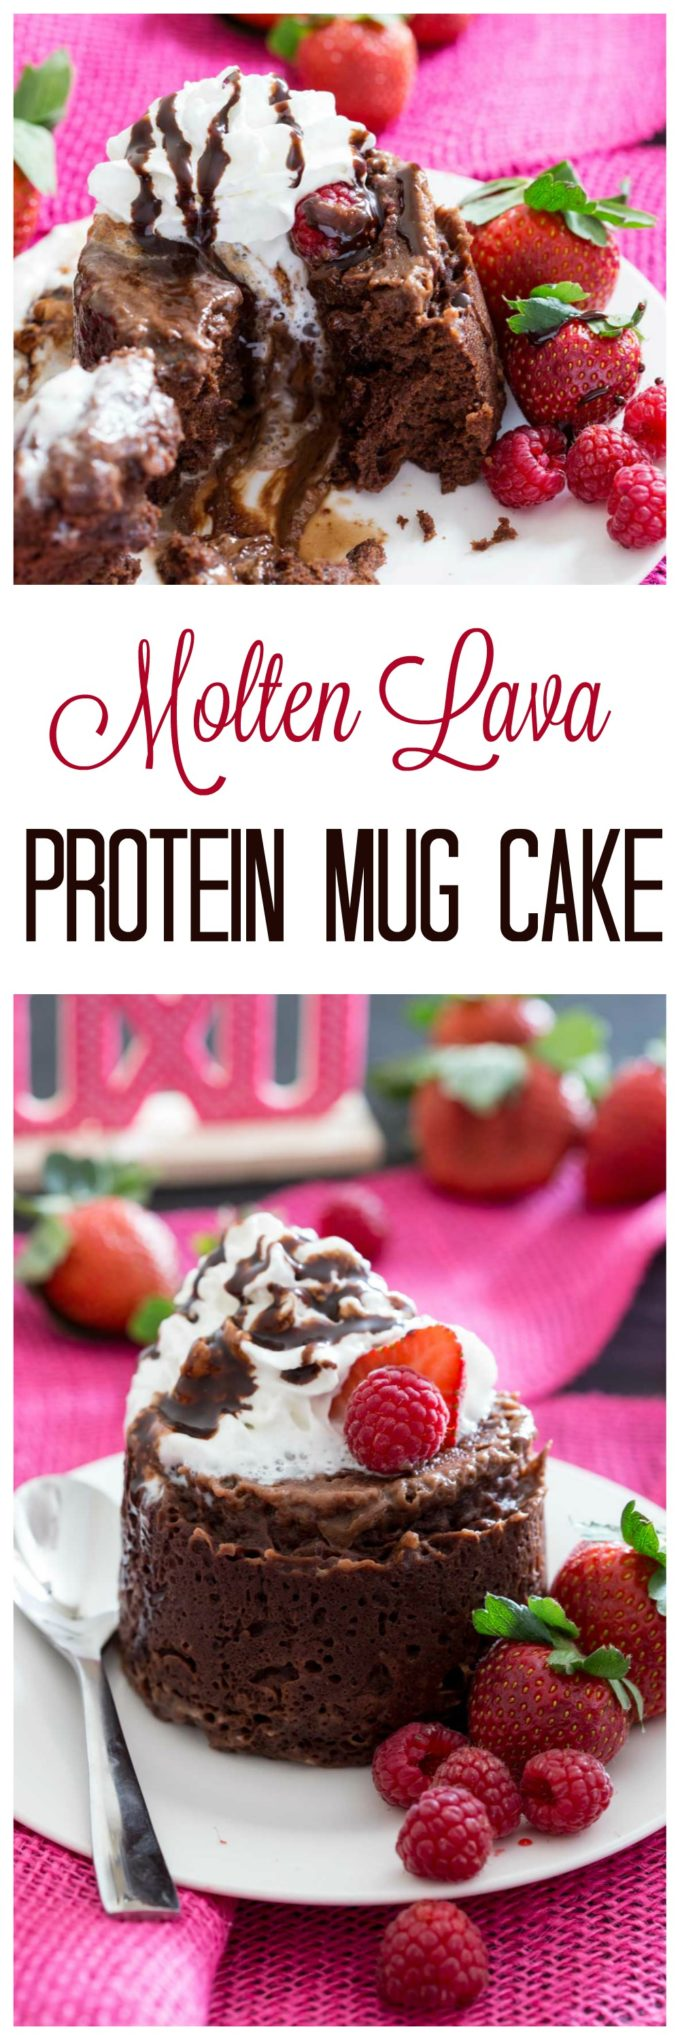 Protein packed molten lava cake you can make in a mug in the microwave